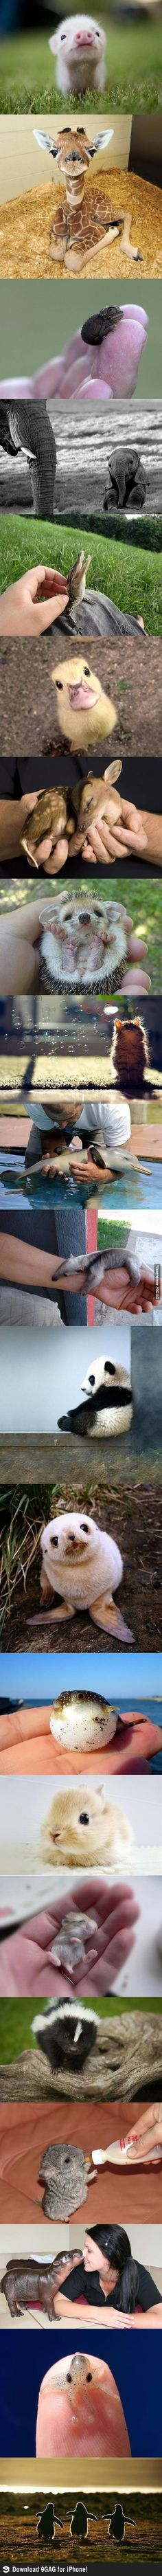 Baby animals.  Couldn't help myself :D